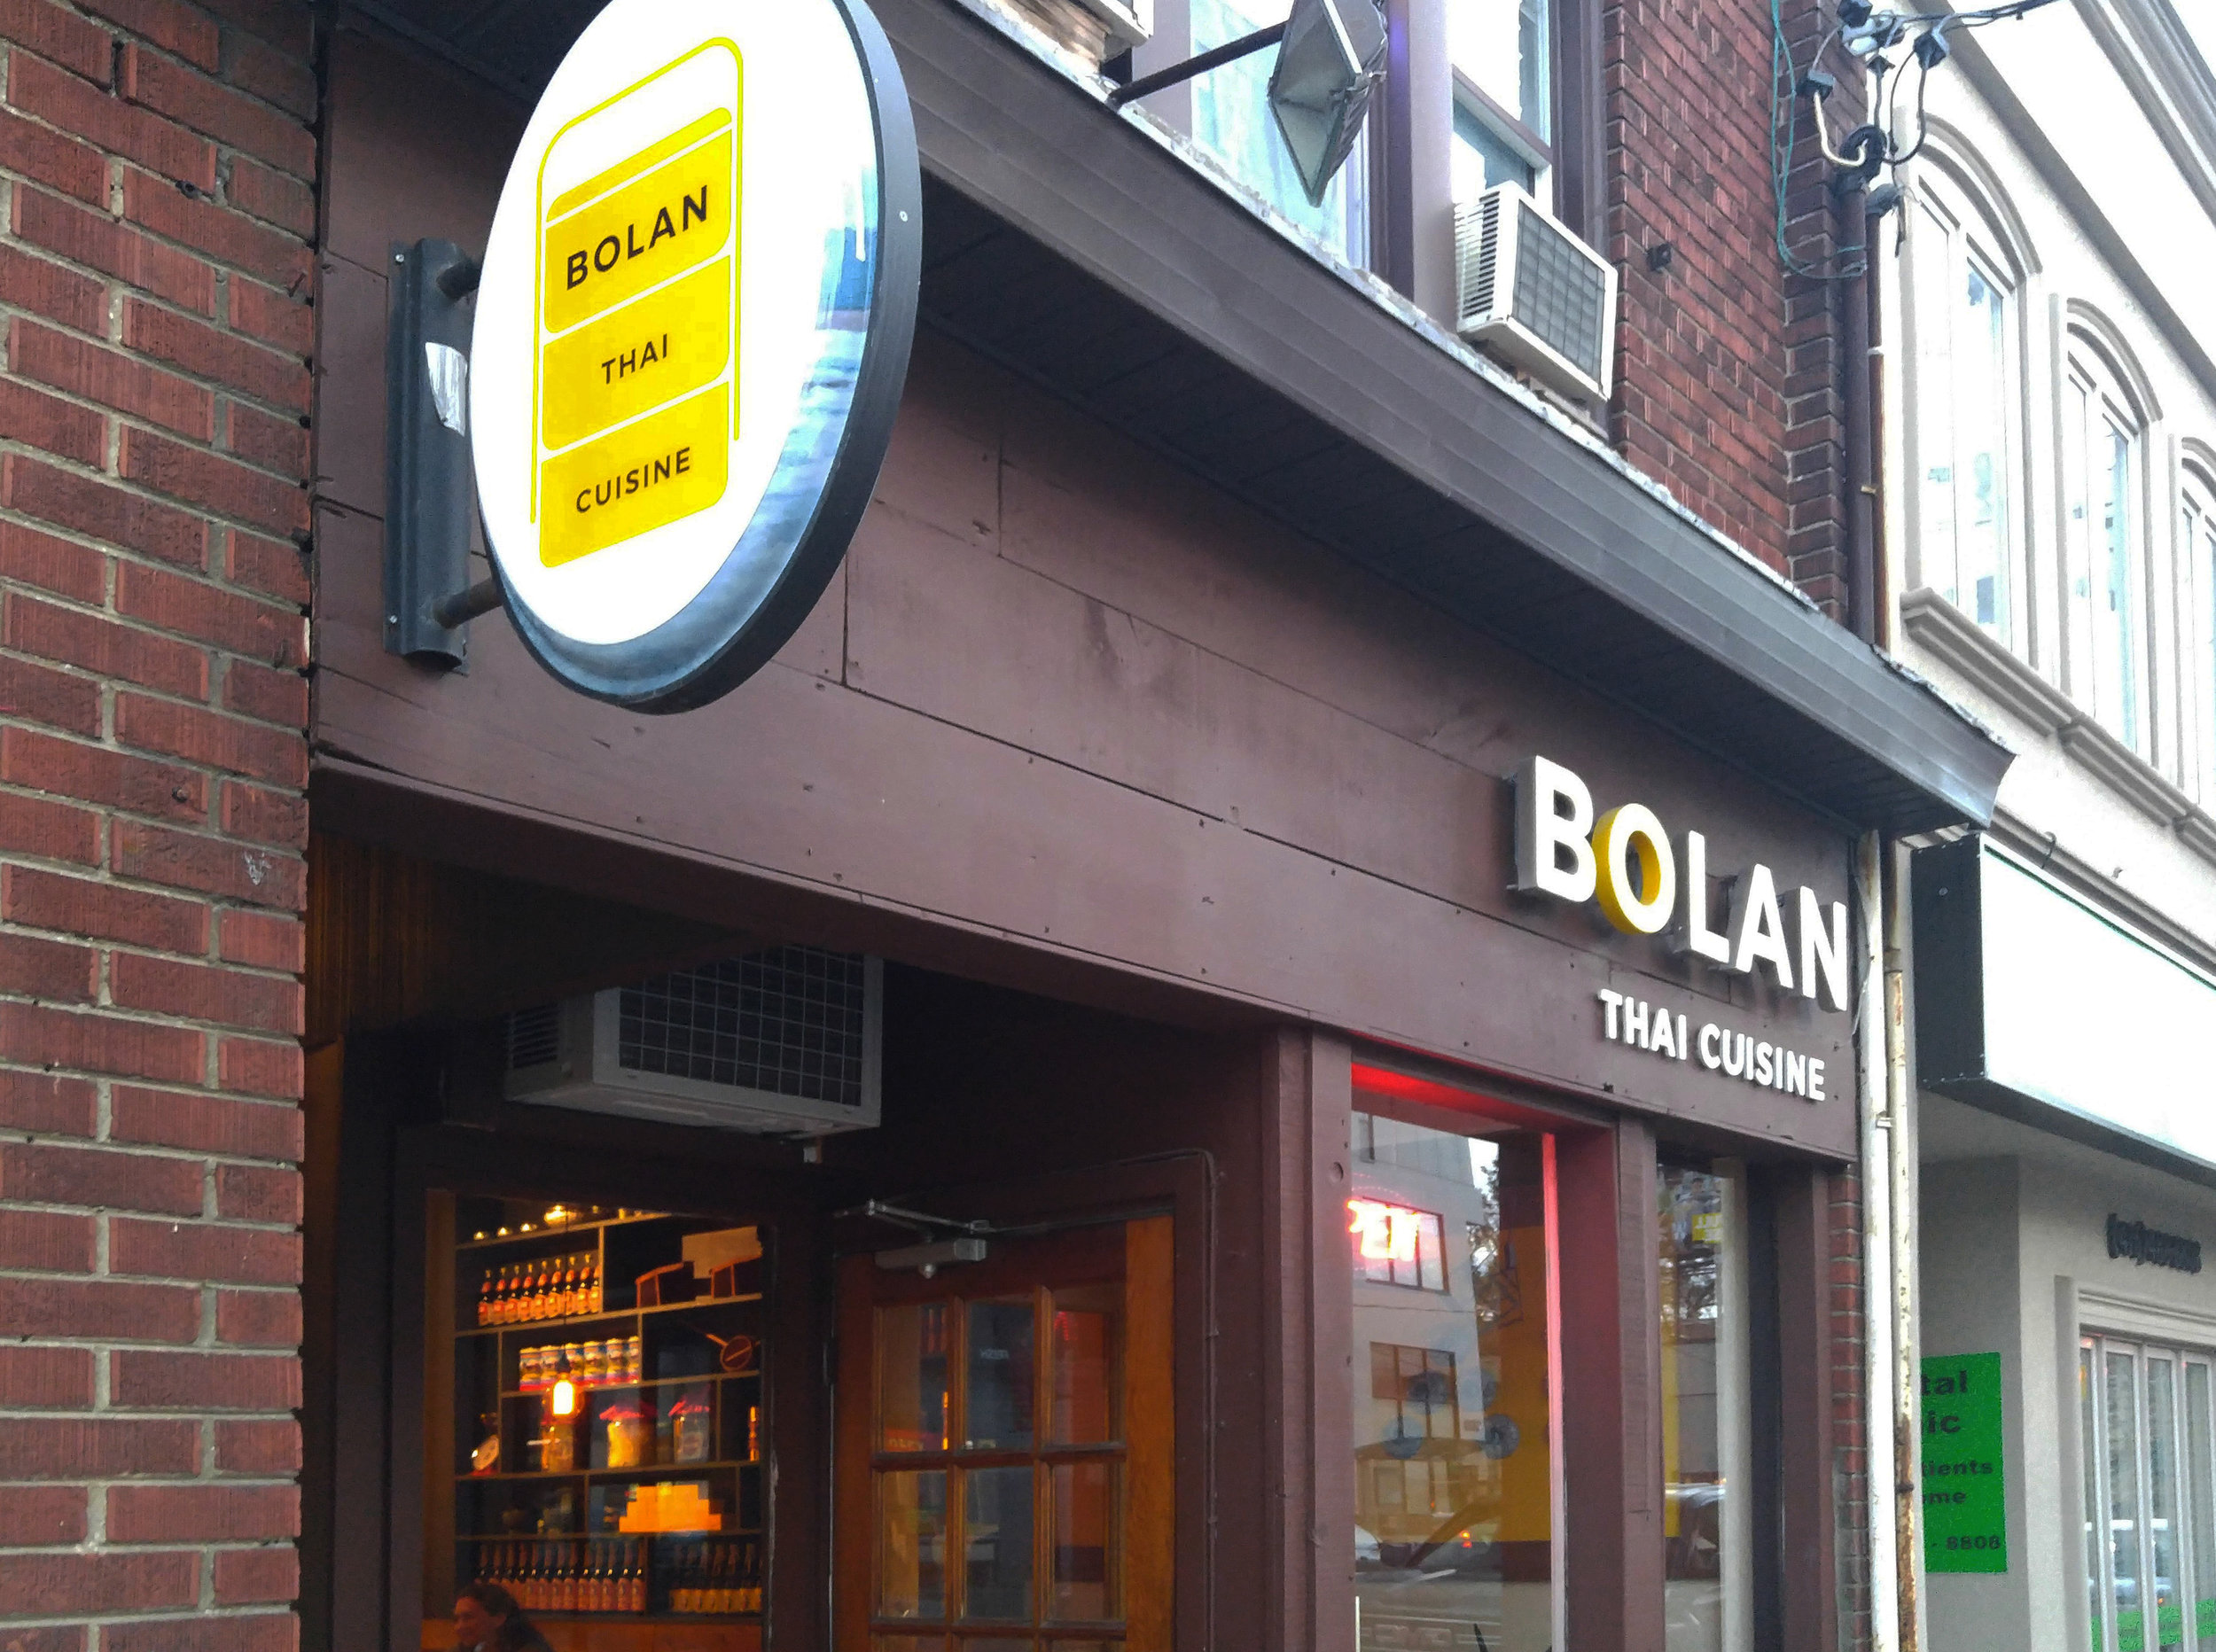 Bolan Thai - Entry - Facade Sign